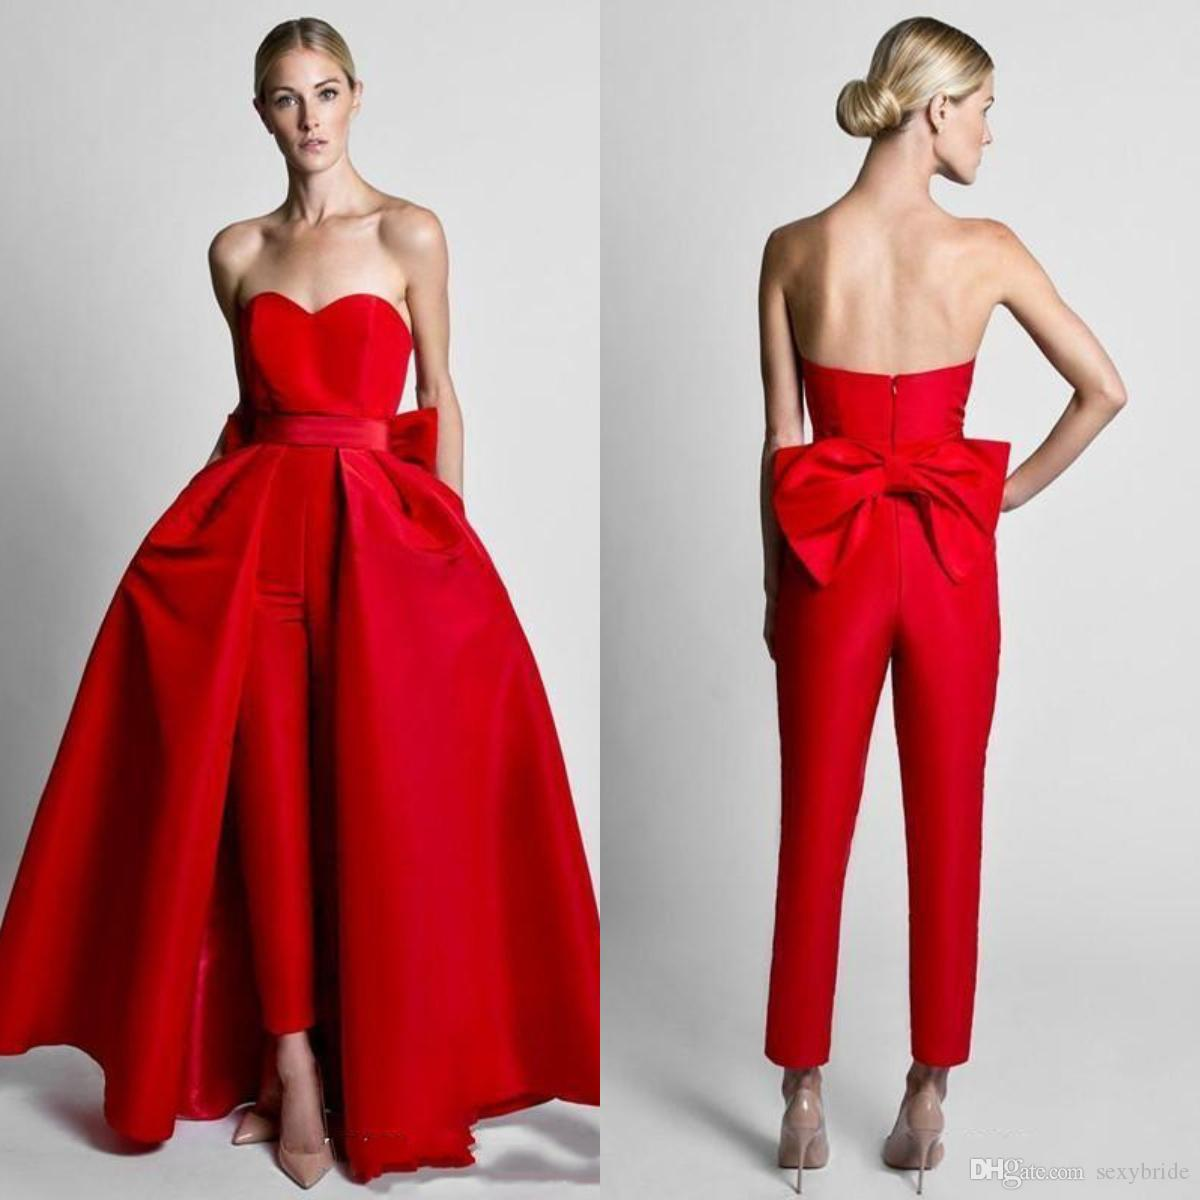 1f4889179b698 Krikor Jabotian 2019 Red Jumpsuits Prom Dresses With Detachable Overskirt  Sweetheart Formal Evening Dresses Long Party Wear Pants For Women Prom  Dresses For ...